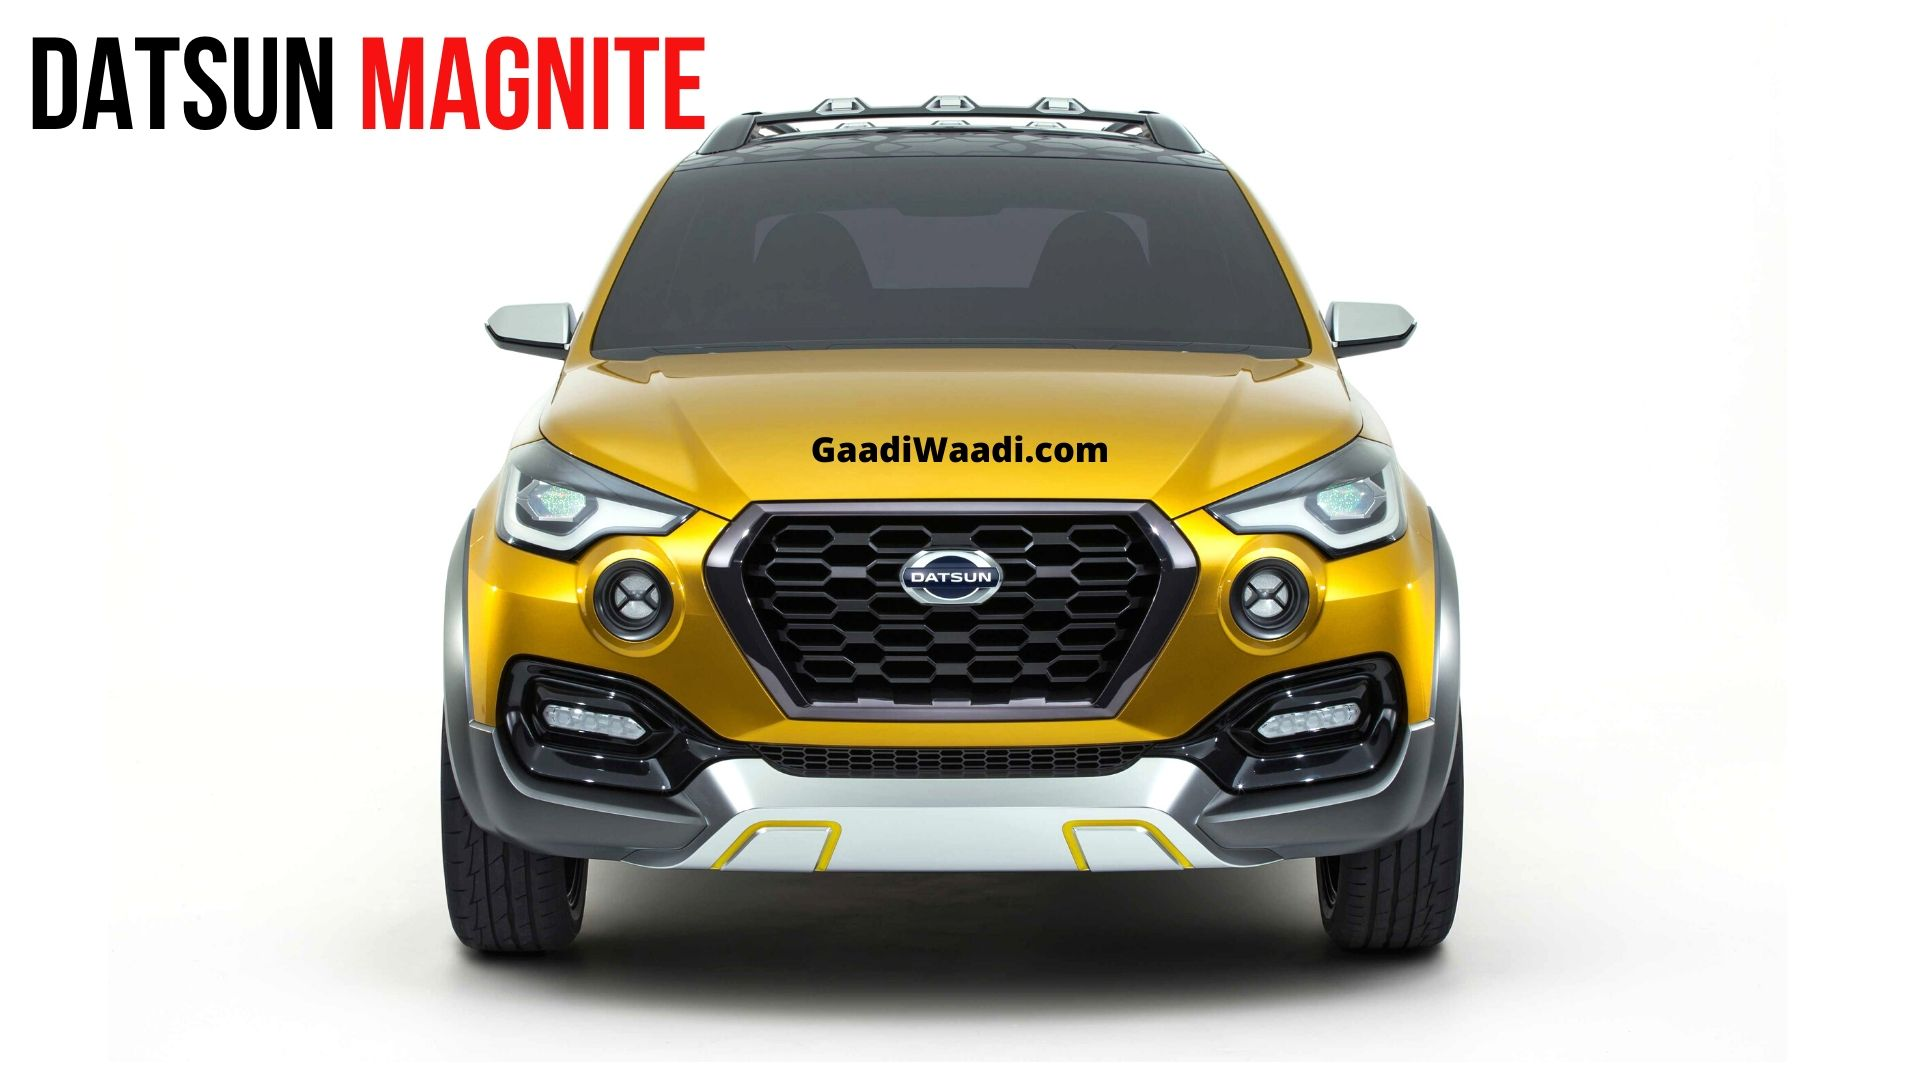 Datsun Magnite Compact SUV To Launch This Year